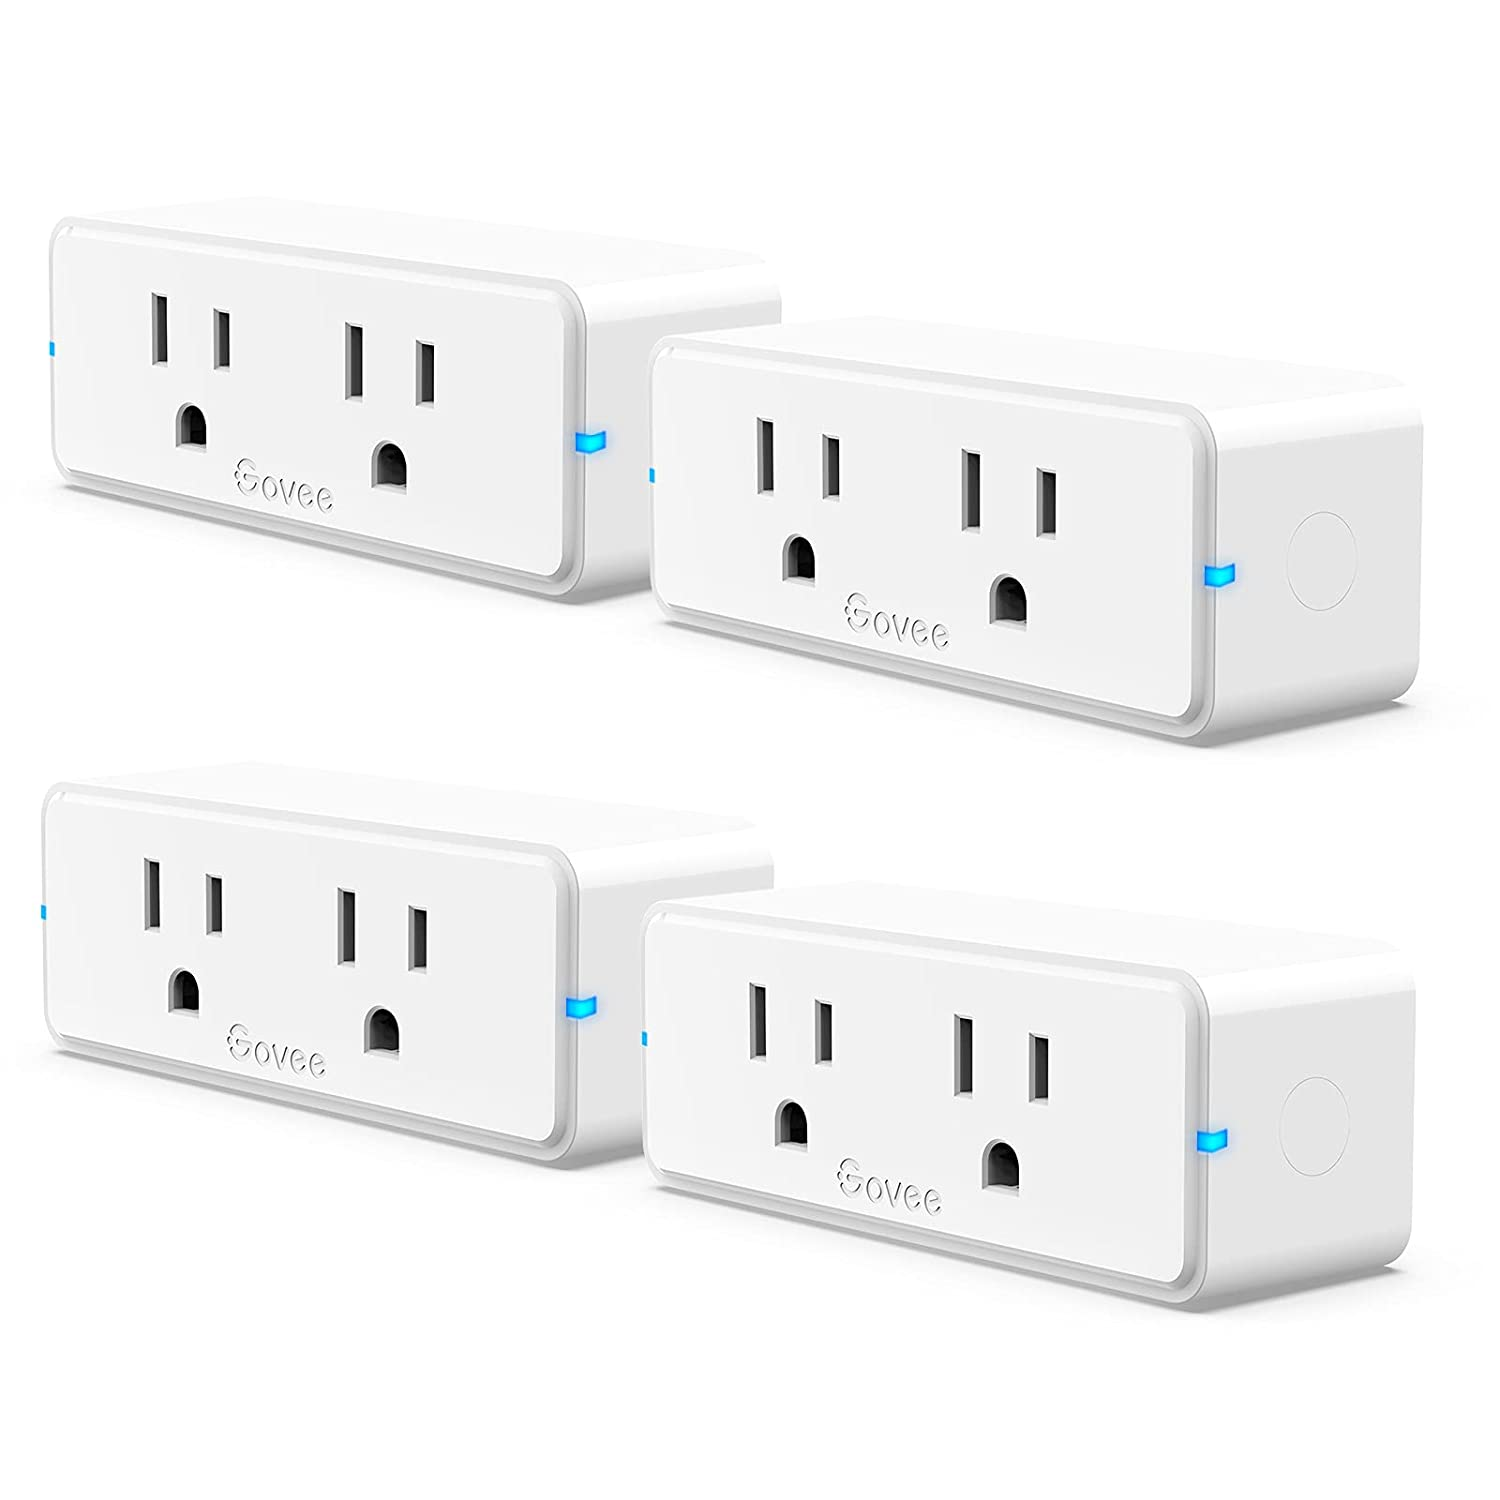 Govee Dual Smart Plug 4 Pack, 15A WiFi Bluetooth Outlet, Work with Alexa and Google Assistant, 2-in-1 Compact Design, Govee Home App Control Remotely with No Hub Required, Timer, FCC and ETL Certified